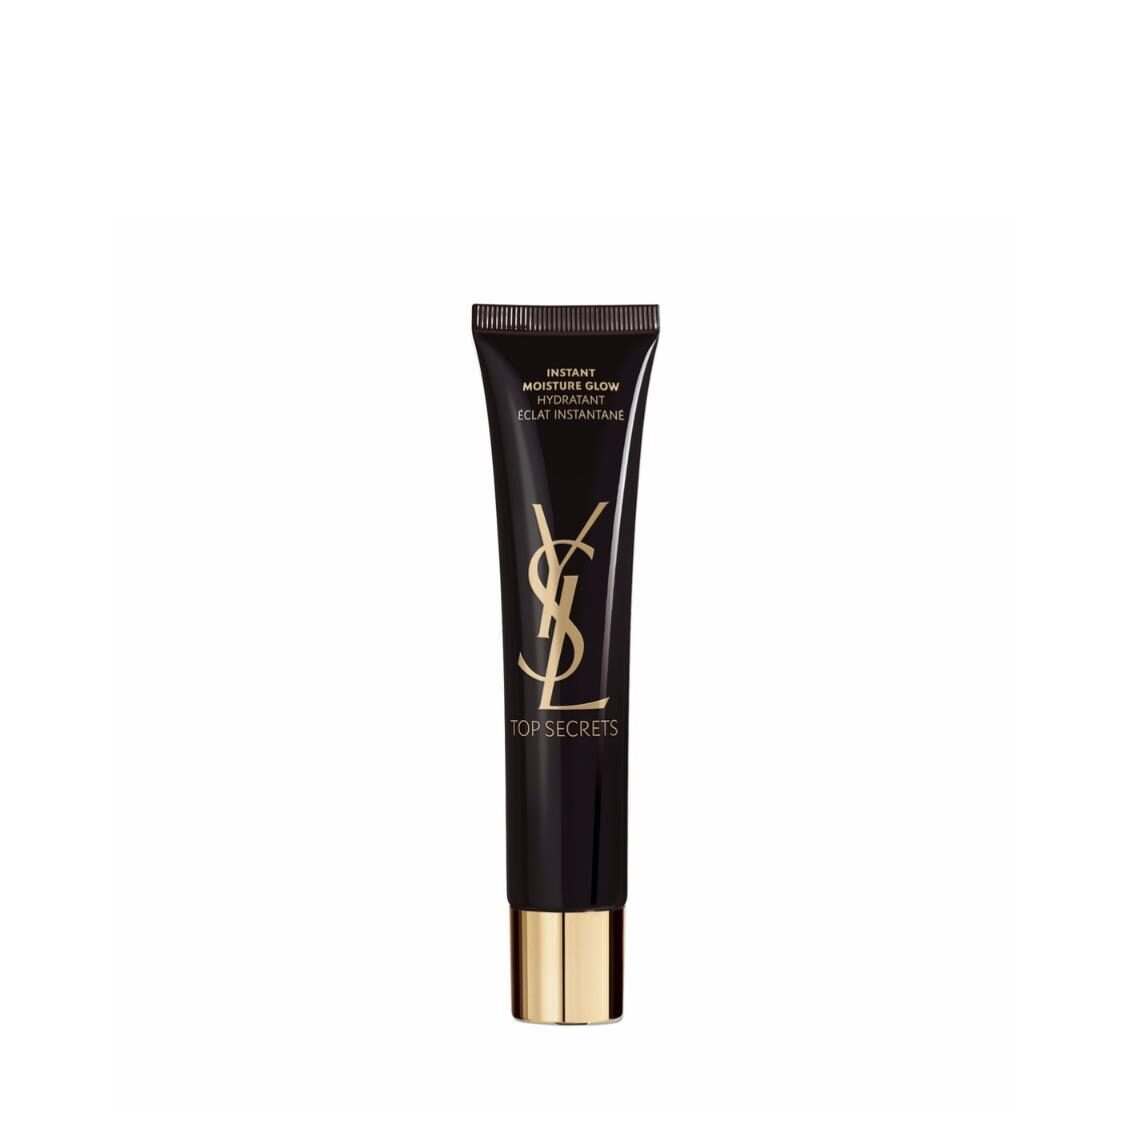 ysl instant moisture glow how to use